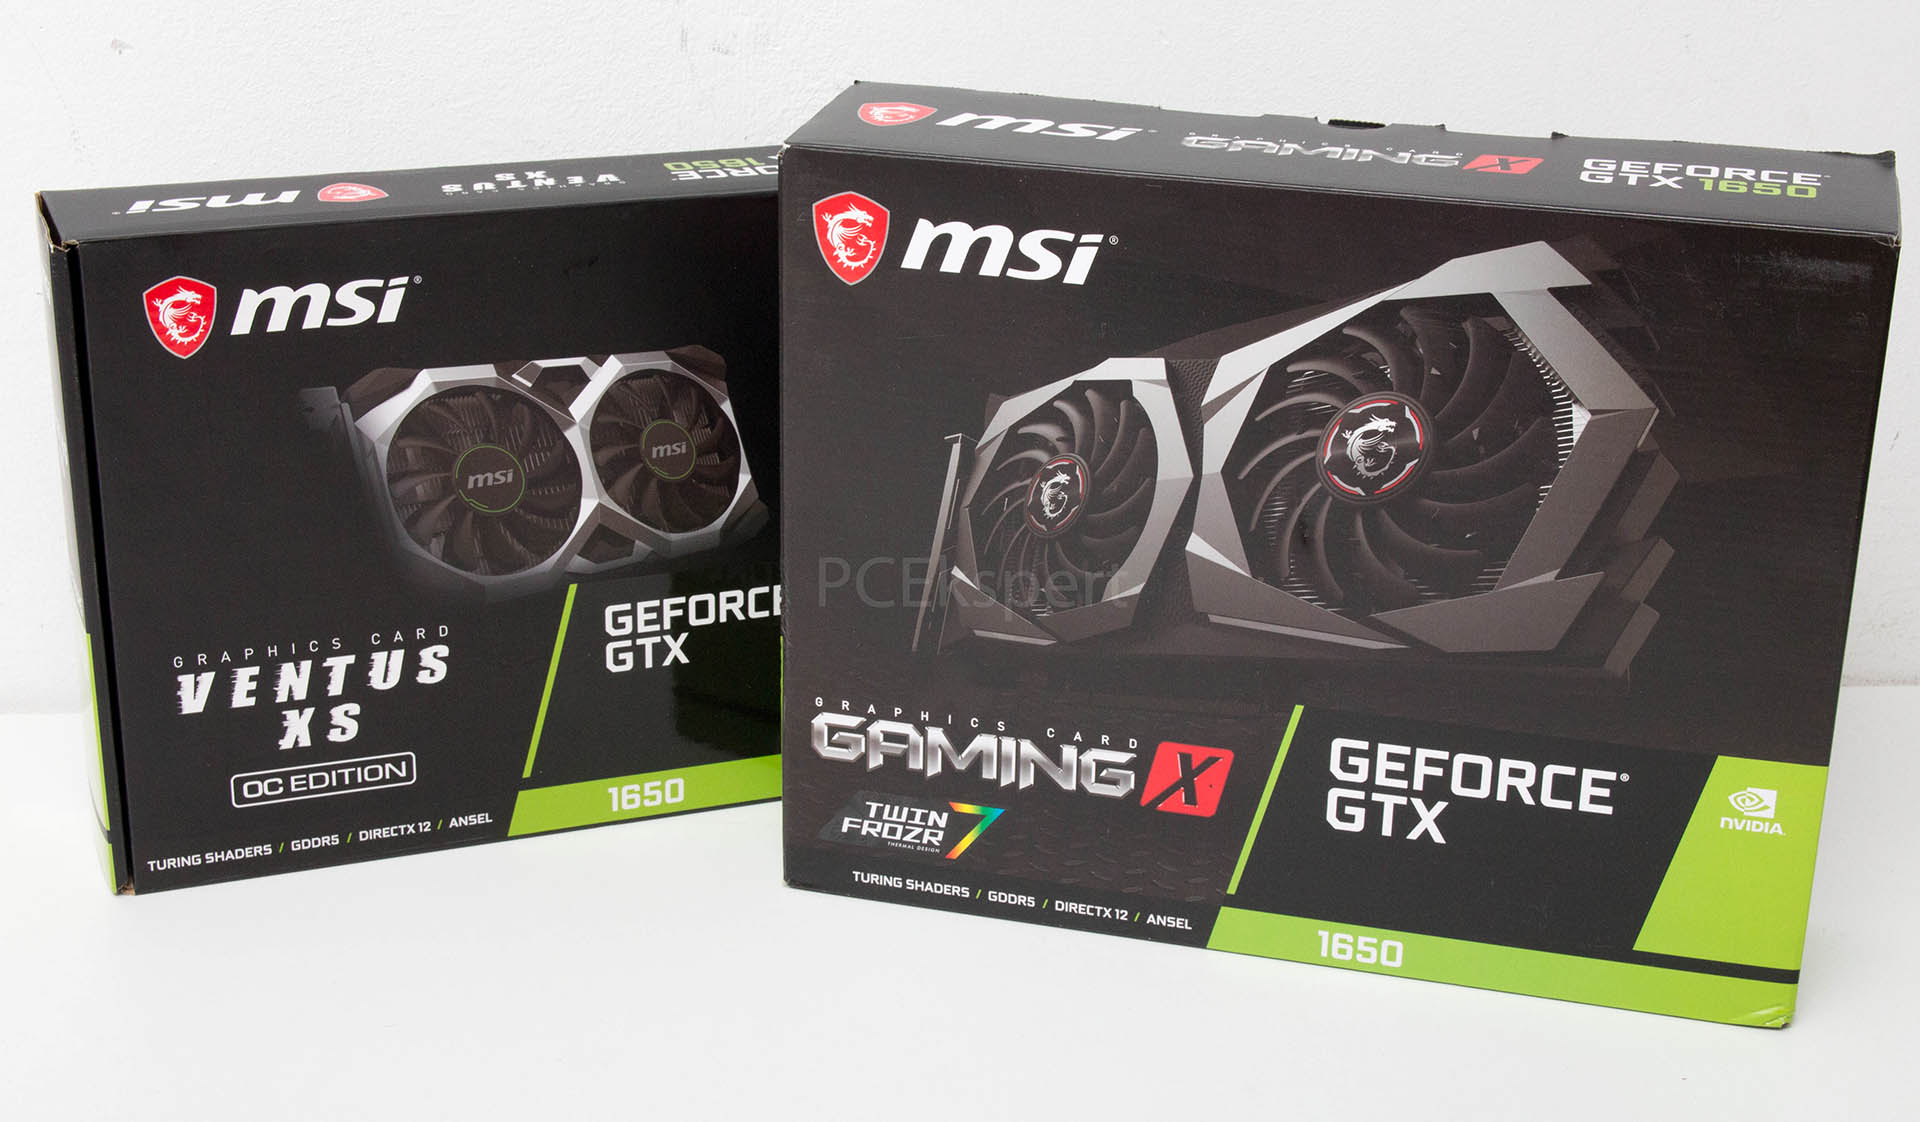 MSI GeForce GTX 1650 Gaming X & Ventus XS OC recenzija